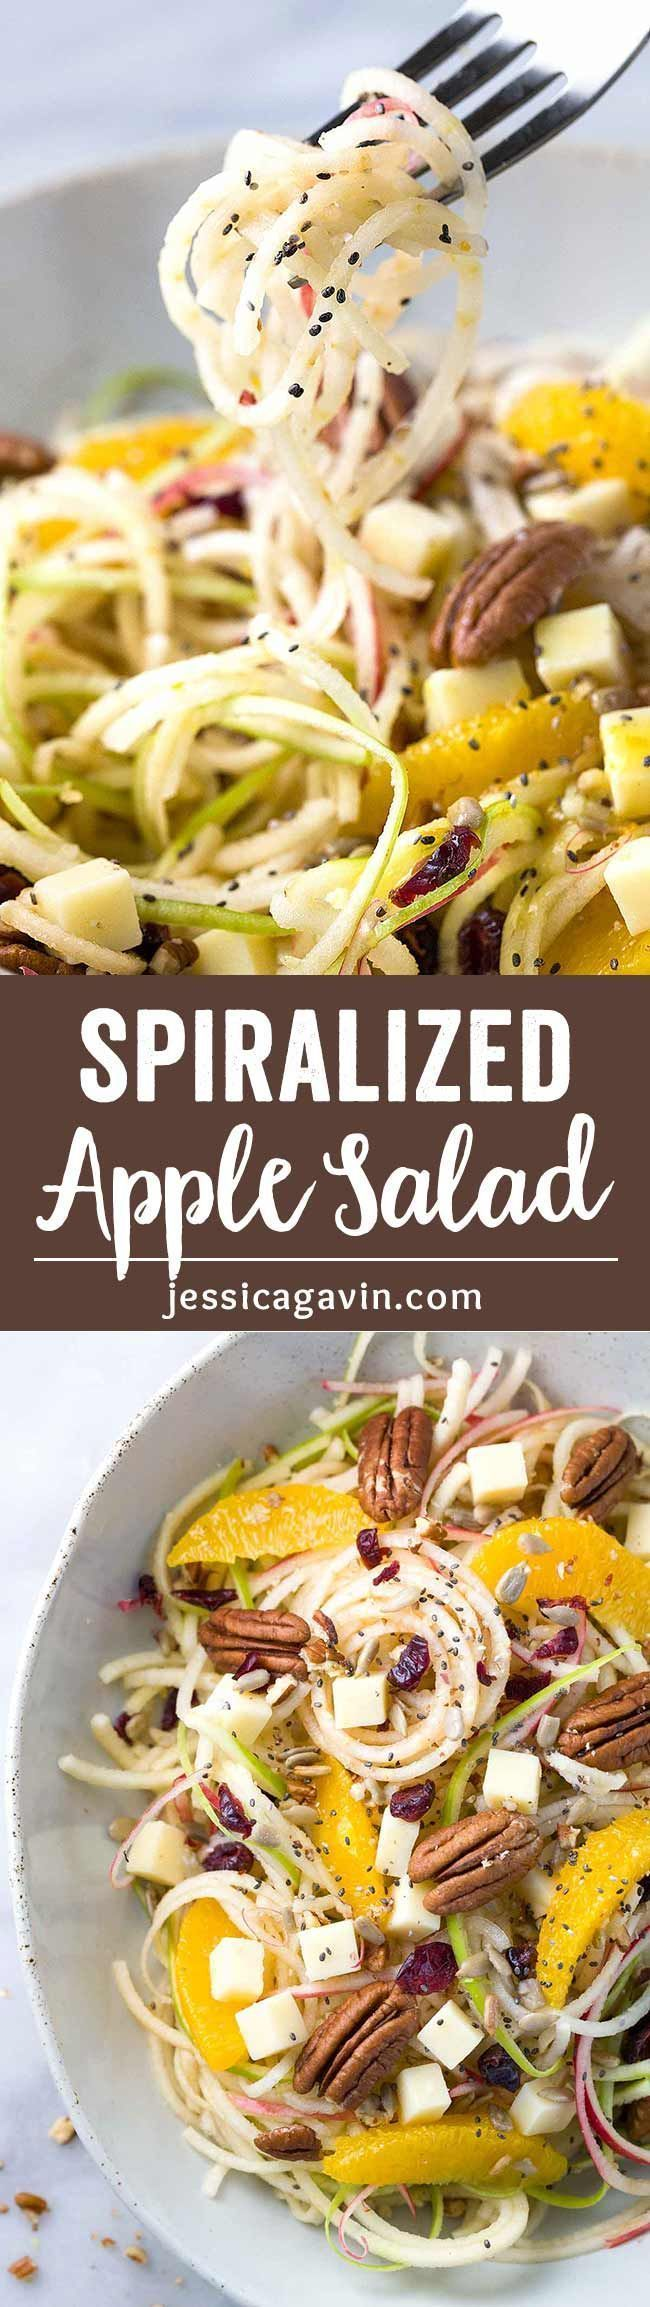 Spiralized Apple Salad with Citrus Dressing - Healthy and refreshing recipe made in only 15 minutes! Topped with oranges, pecans, cheddar cheese, cranberries, sunflower and chia seeds. via /foodiegavin/